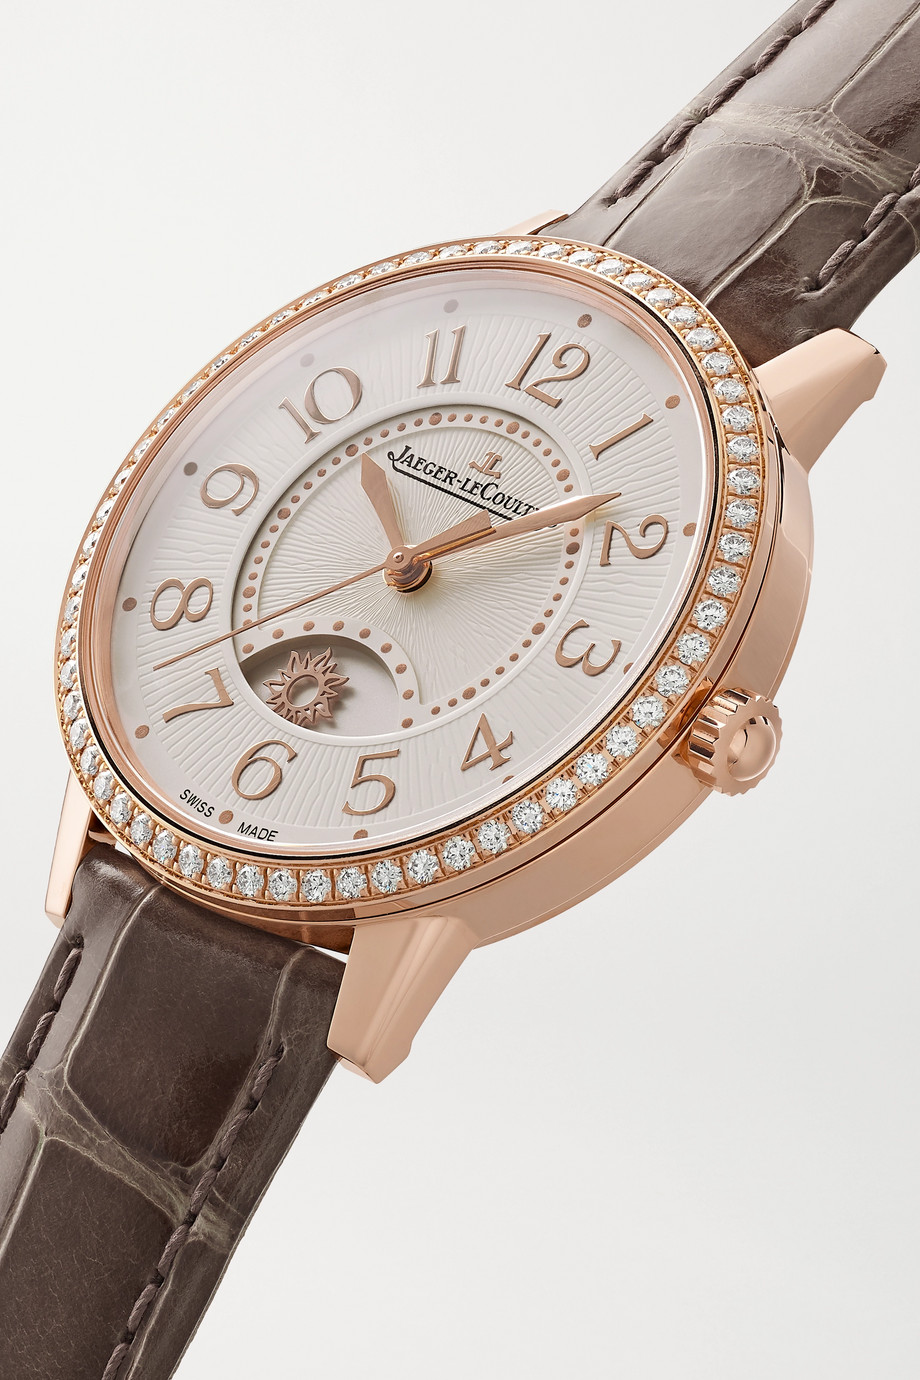 Jaeger-LeCoultre Rendez-Vous Night & Day Automatic Medium 34 mm Uhr aus Roségold mit Diamanten und Alligatorlederarmband